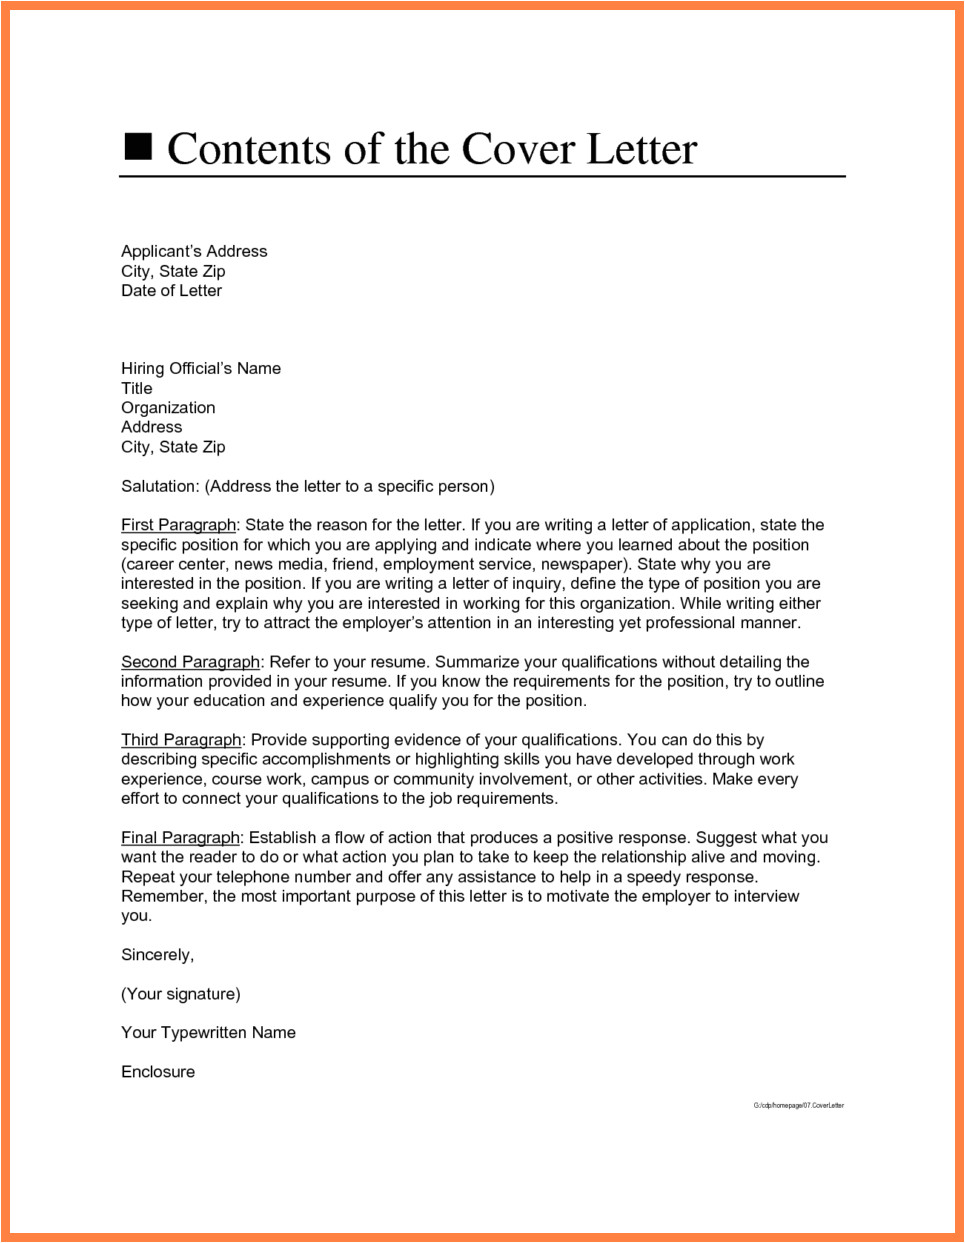 How to Adress A Cover Letter 5 Cover Letter Address Marital Settlements Information